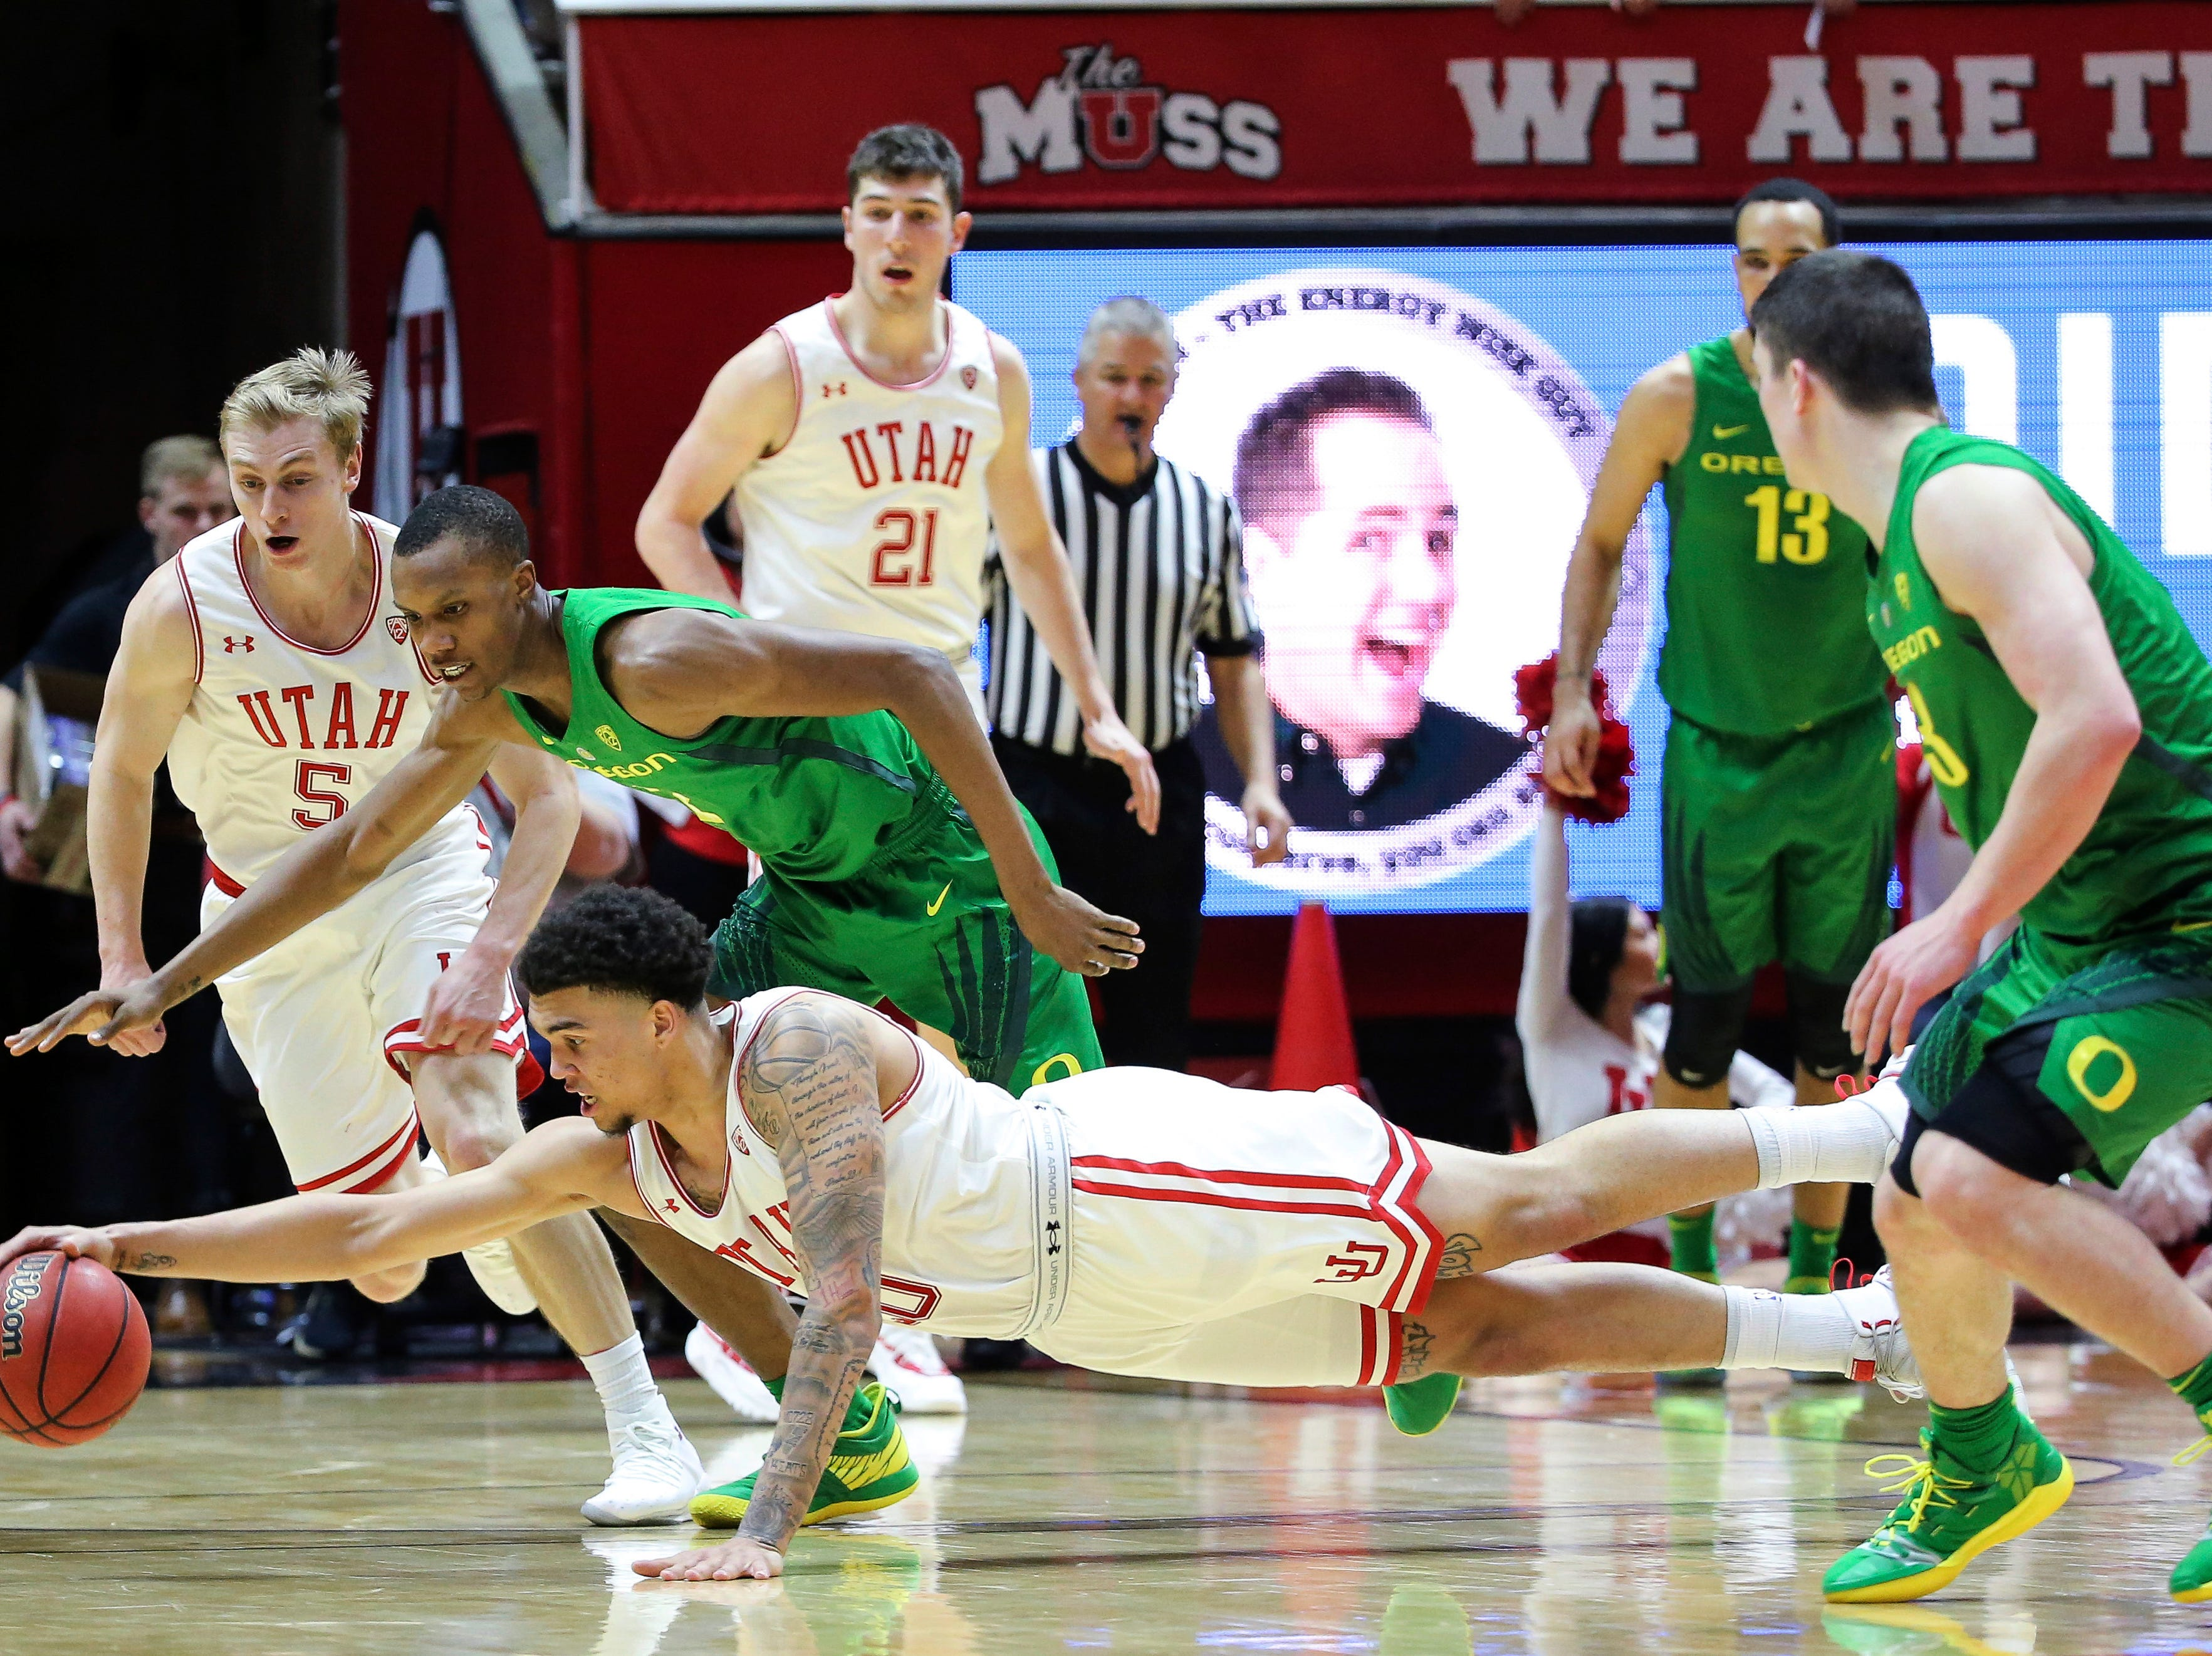 Utah forward Timmy Allen (20) dives in front of Oregon forward Louis King (2) to grab the ball during the second half of an NCAA college basketball game Thursday, Jan. 31, 2019, in Salt Lake City. Oregon won 78-72.